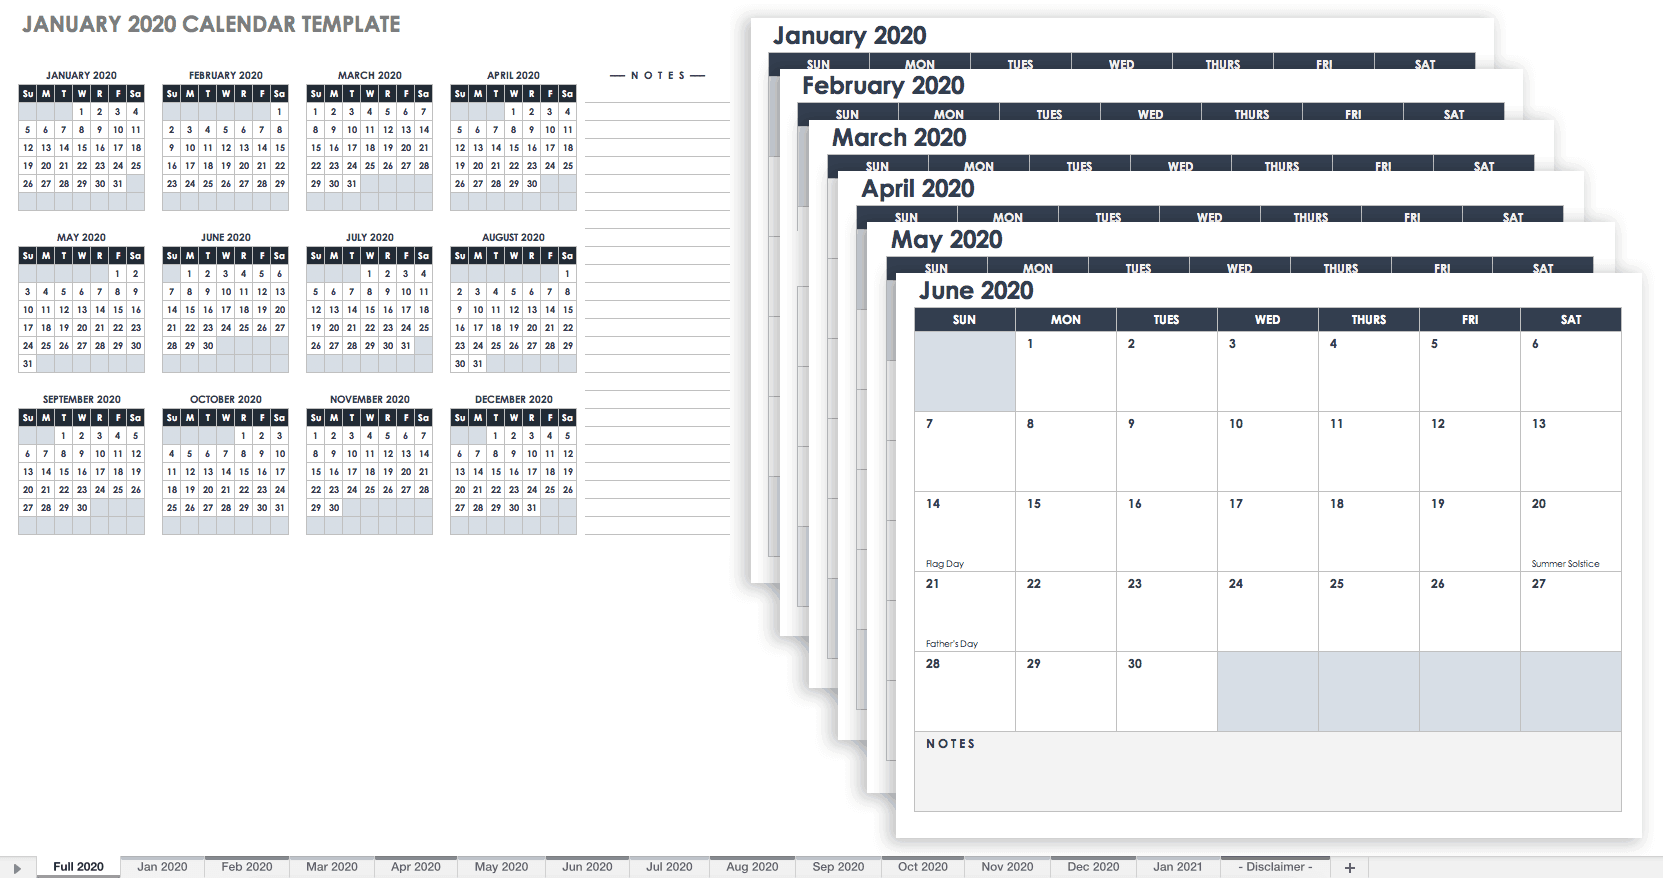 January 2020 Menu Calendars For Word 15 Free Monthly Calendar Templates | Smartsheet